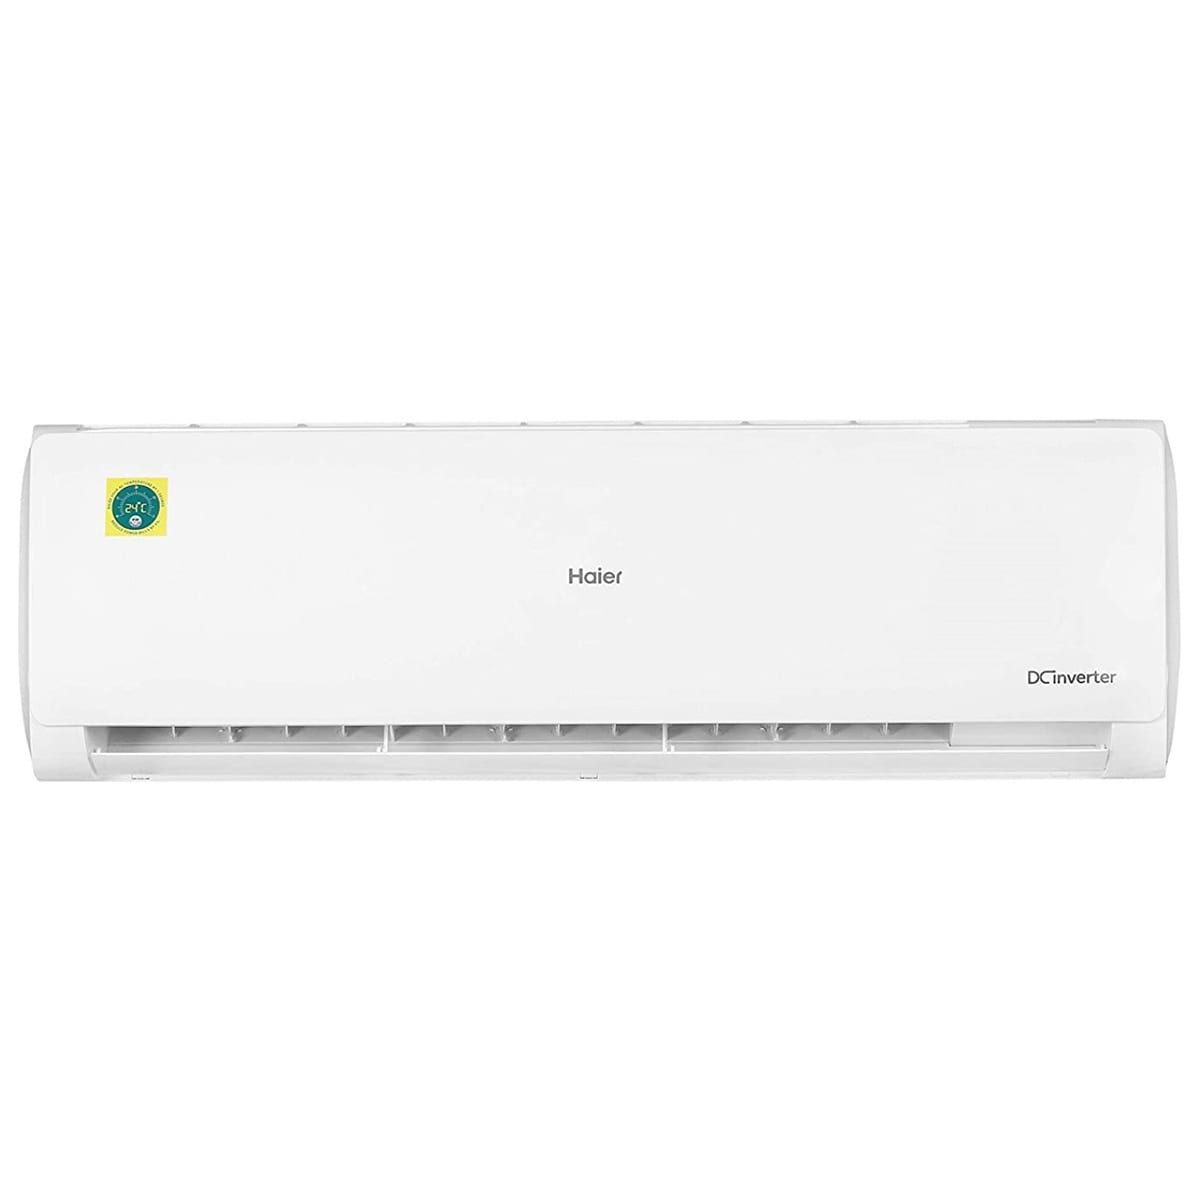 Haier CleanCool XL 2 Ton 3 Star Inverter Split AC (Copper Condenser, HSU22C-TFW3B(INV), White)